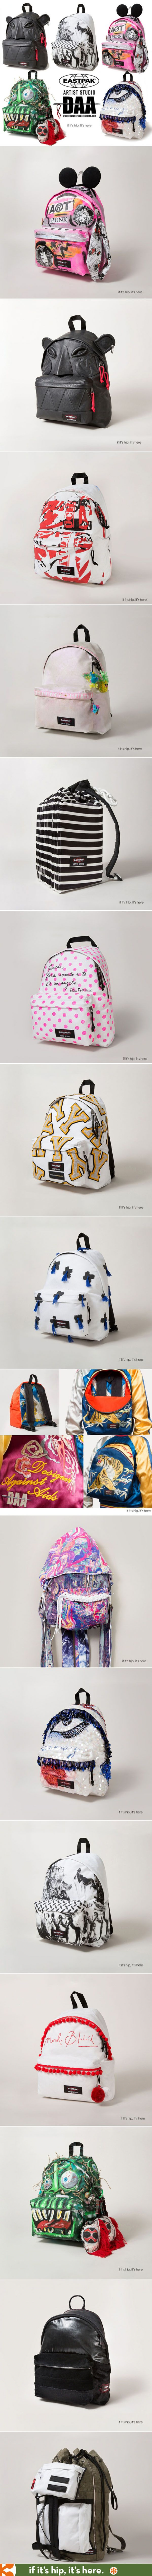 16 Designers Create Eastpak Backpacks to be auctioned for Charity. | http://www.ifitshipitshere.com/16-designers-customize-eastpak-backpacks-auctioned-charity/